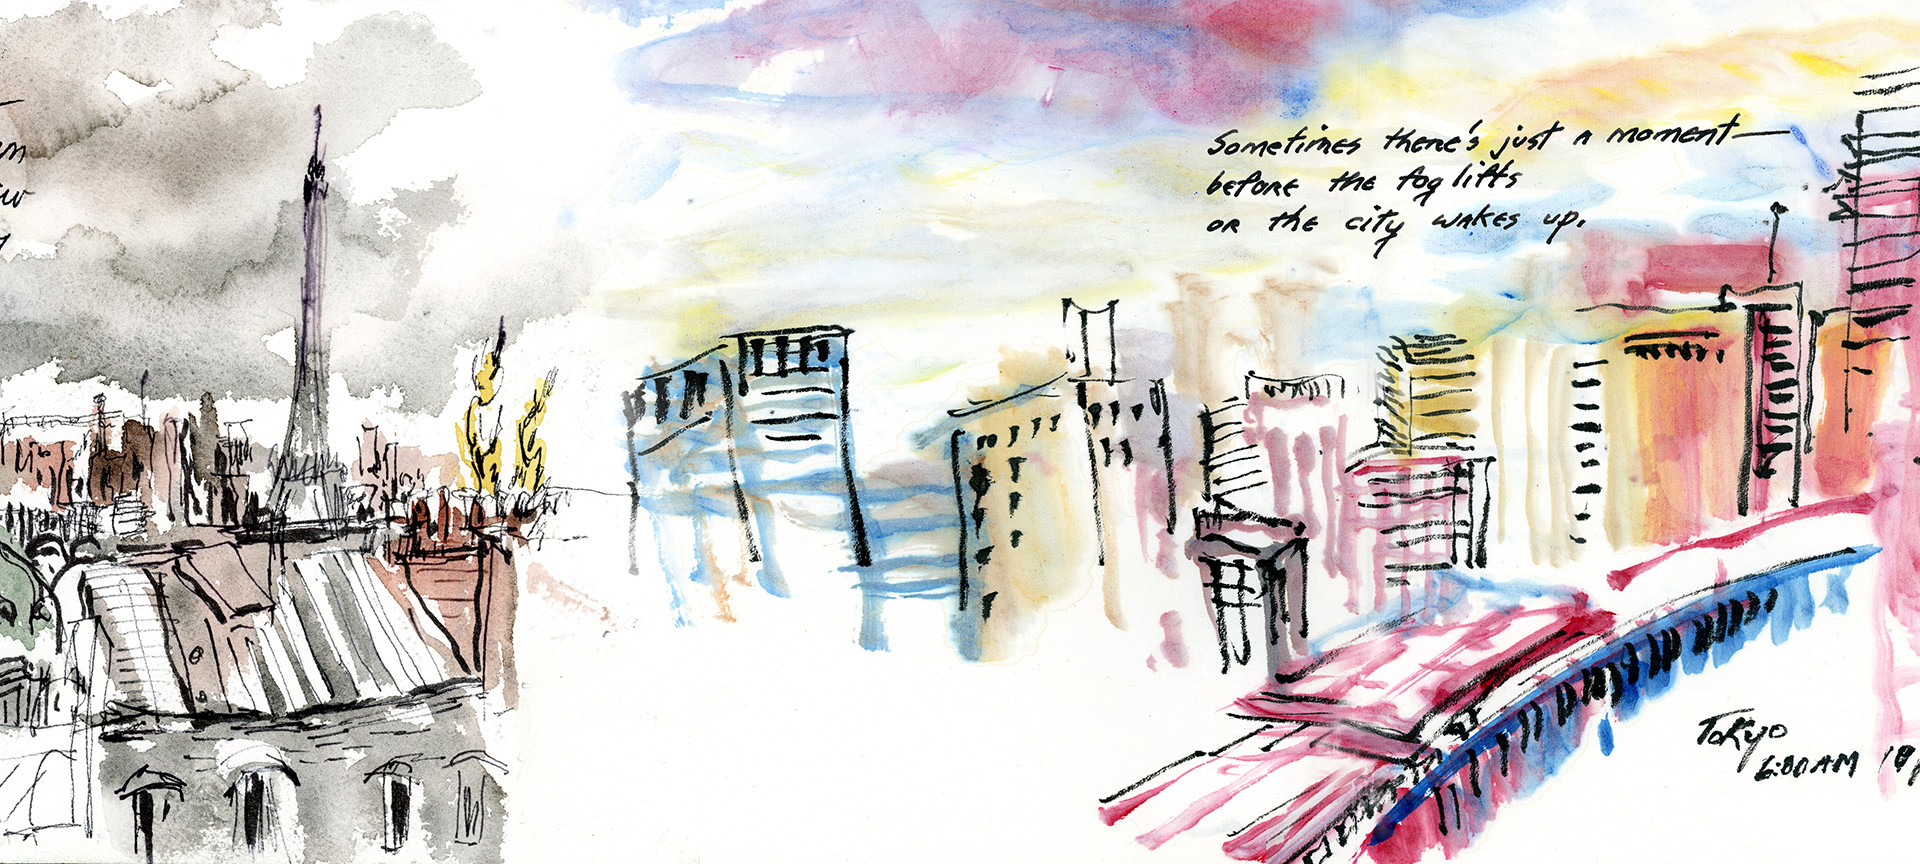 Tokyo and Paris - Life on the Page, A Graphic Memoir